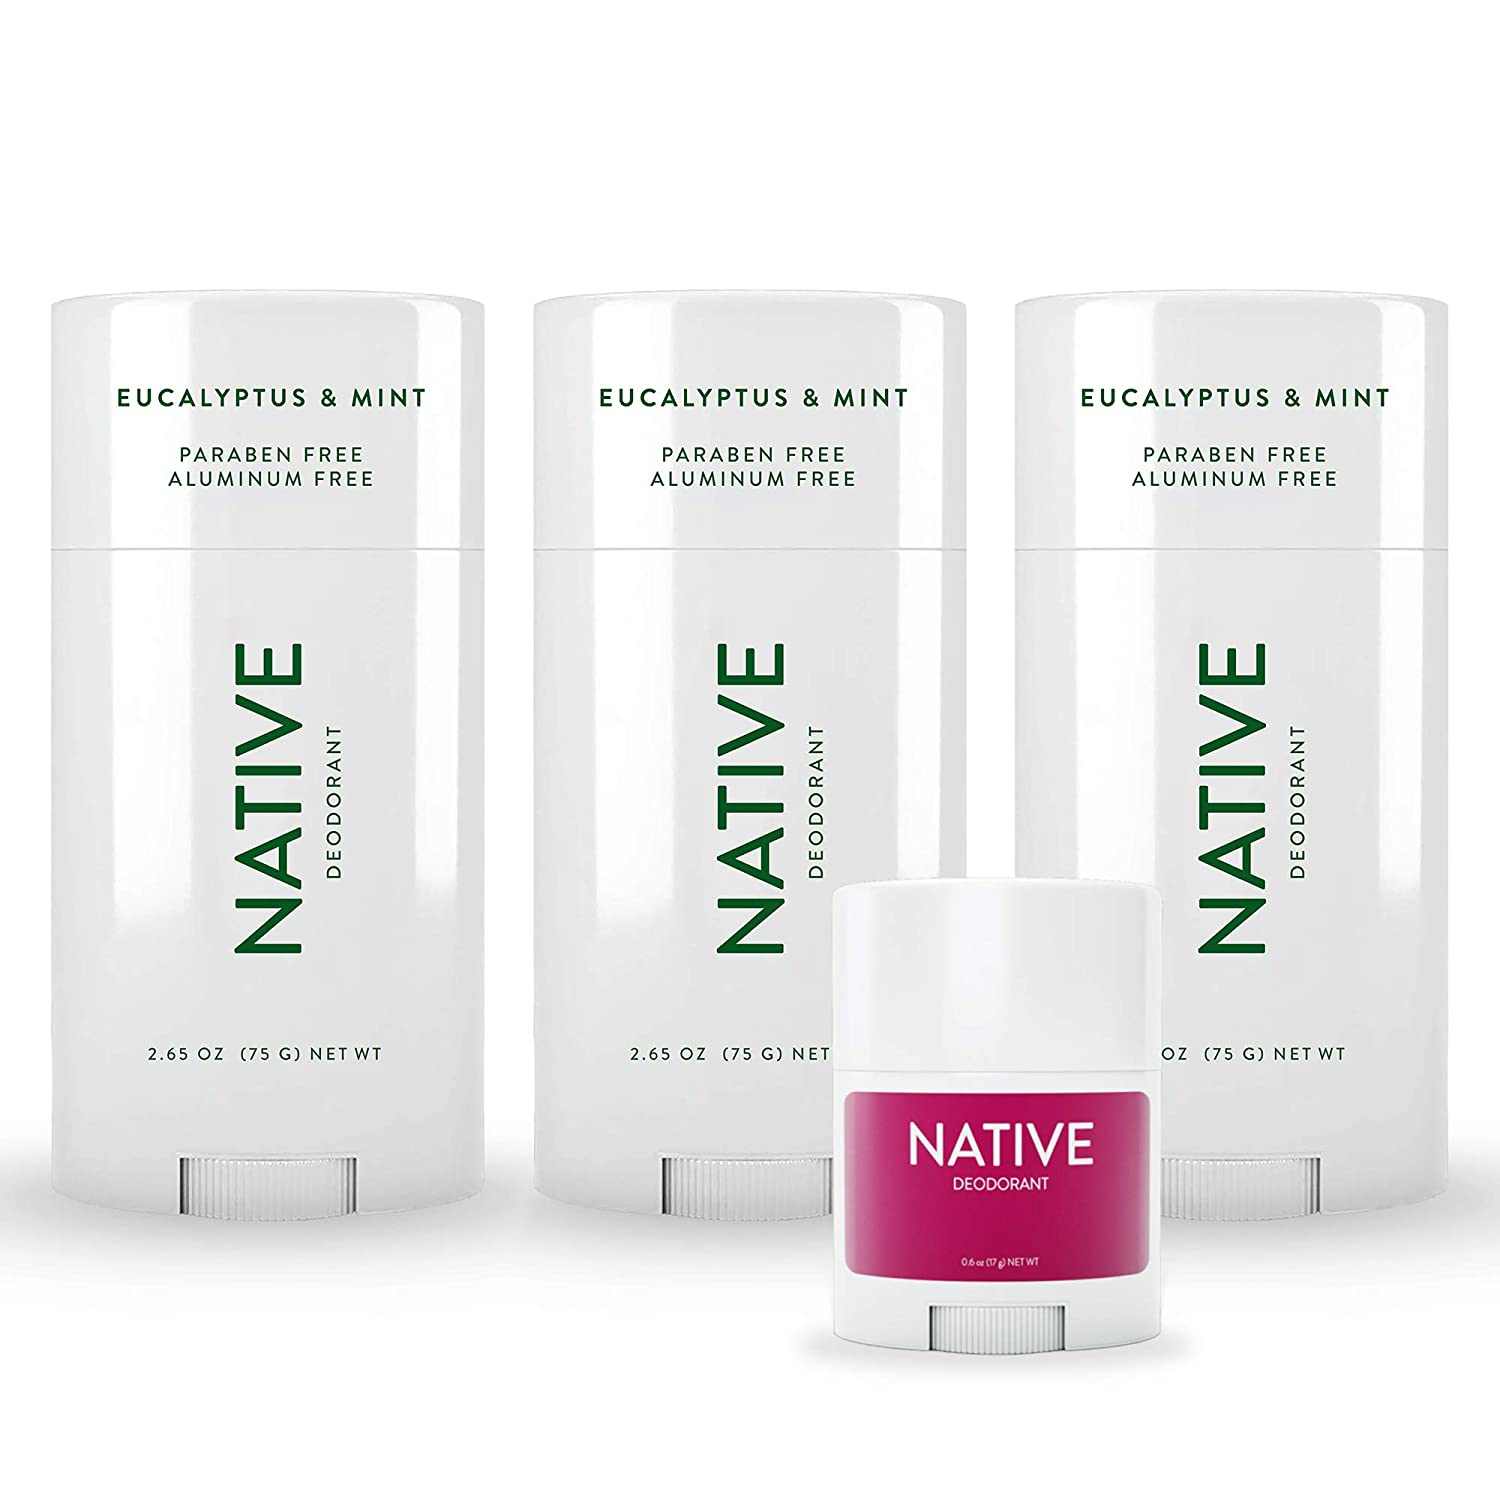 Native Deodorant - Natural Deodorant for Women and Men - 3 Pack of Eucalyptus & Mint and Free Mini Bar of Blackberry & Green Tea - Aluminum Free, Free of Parabens & Sulfates